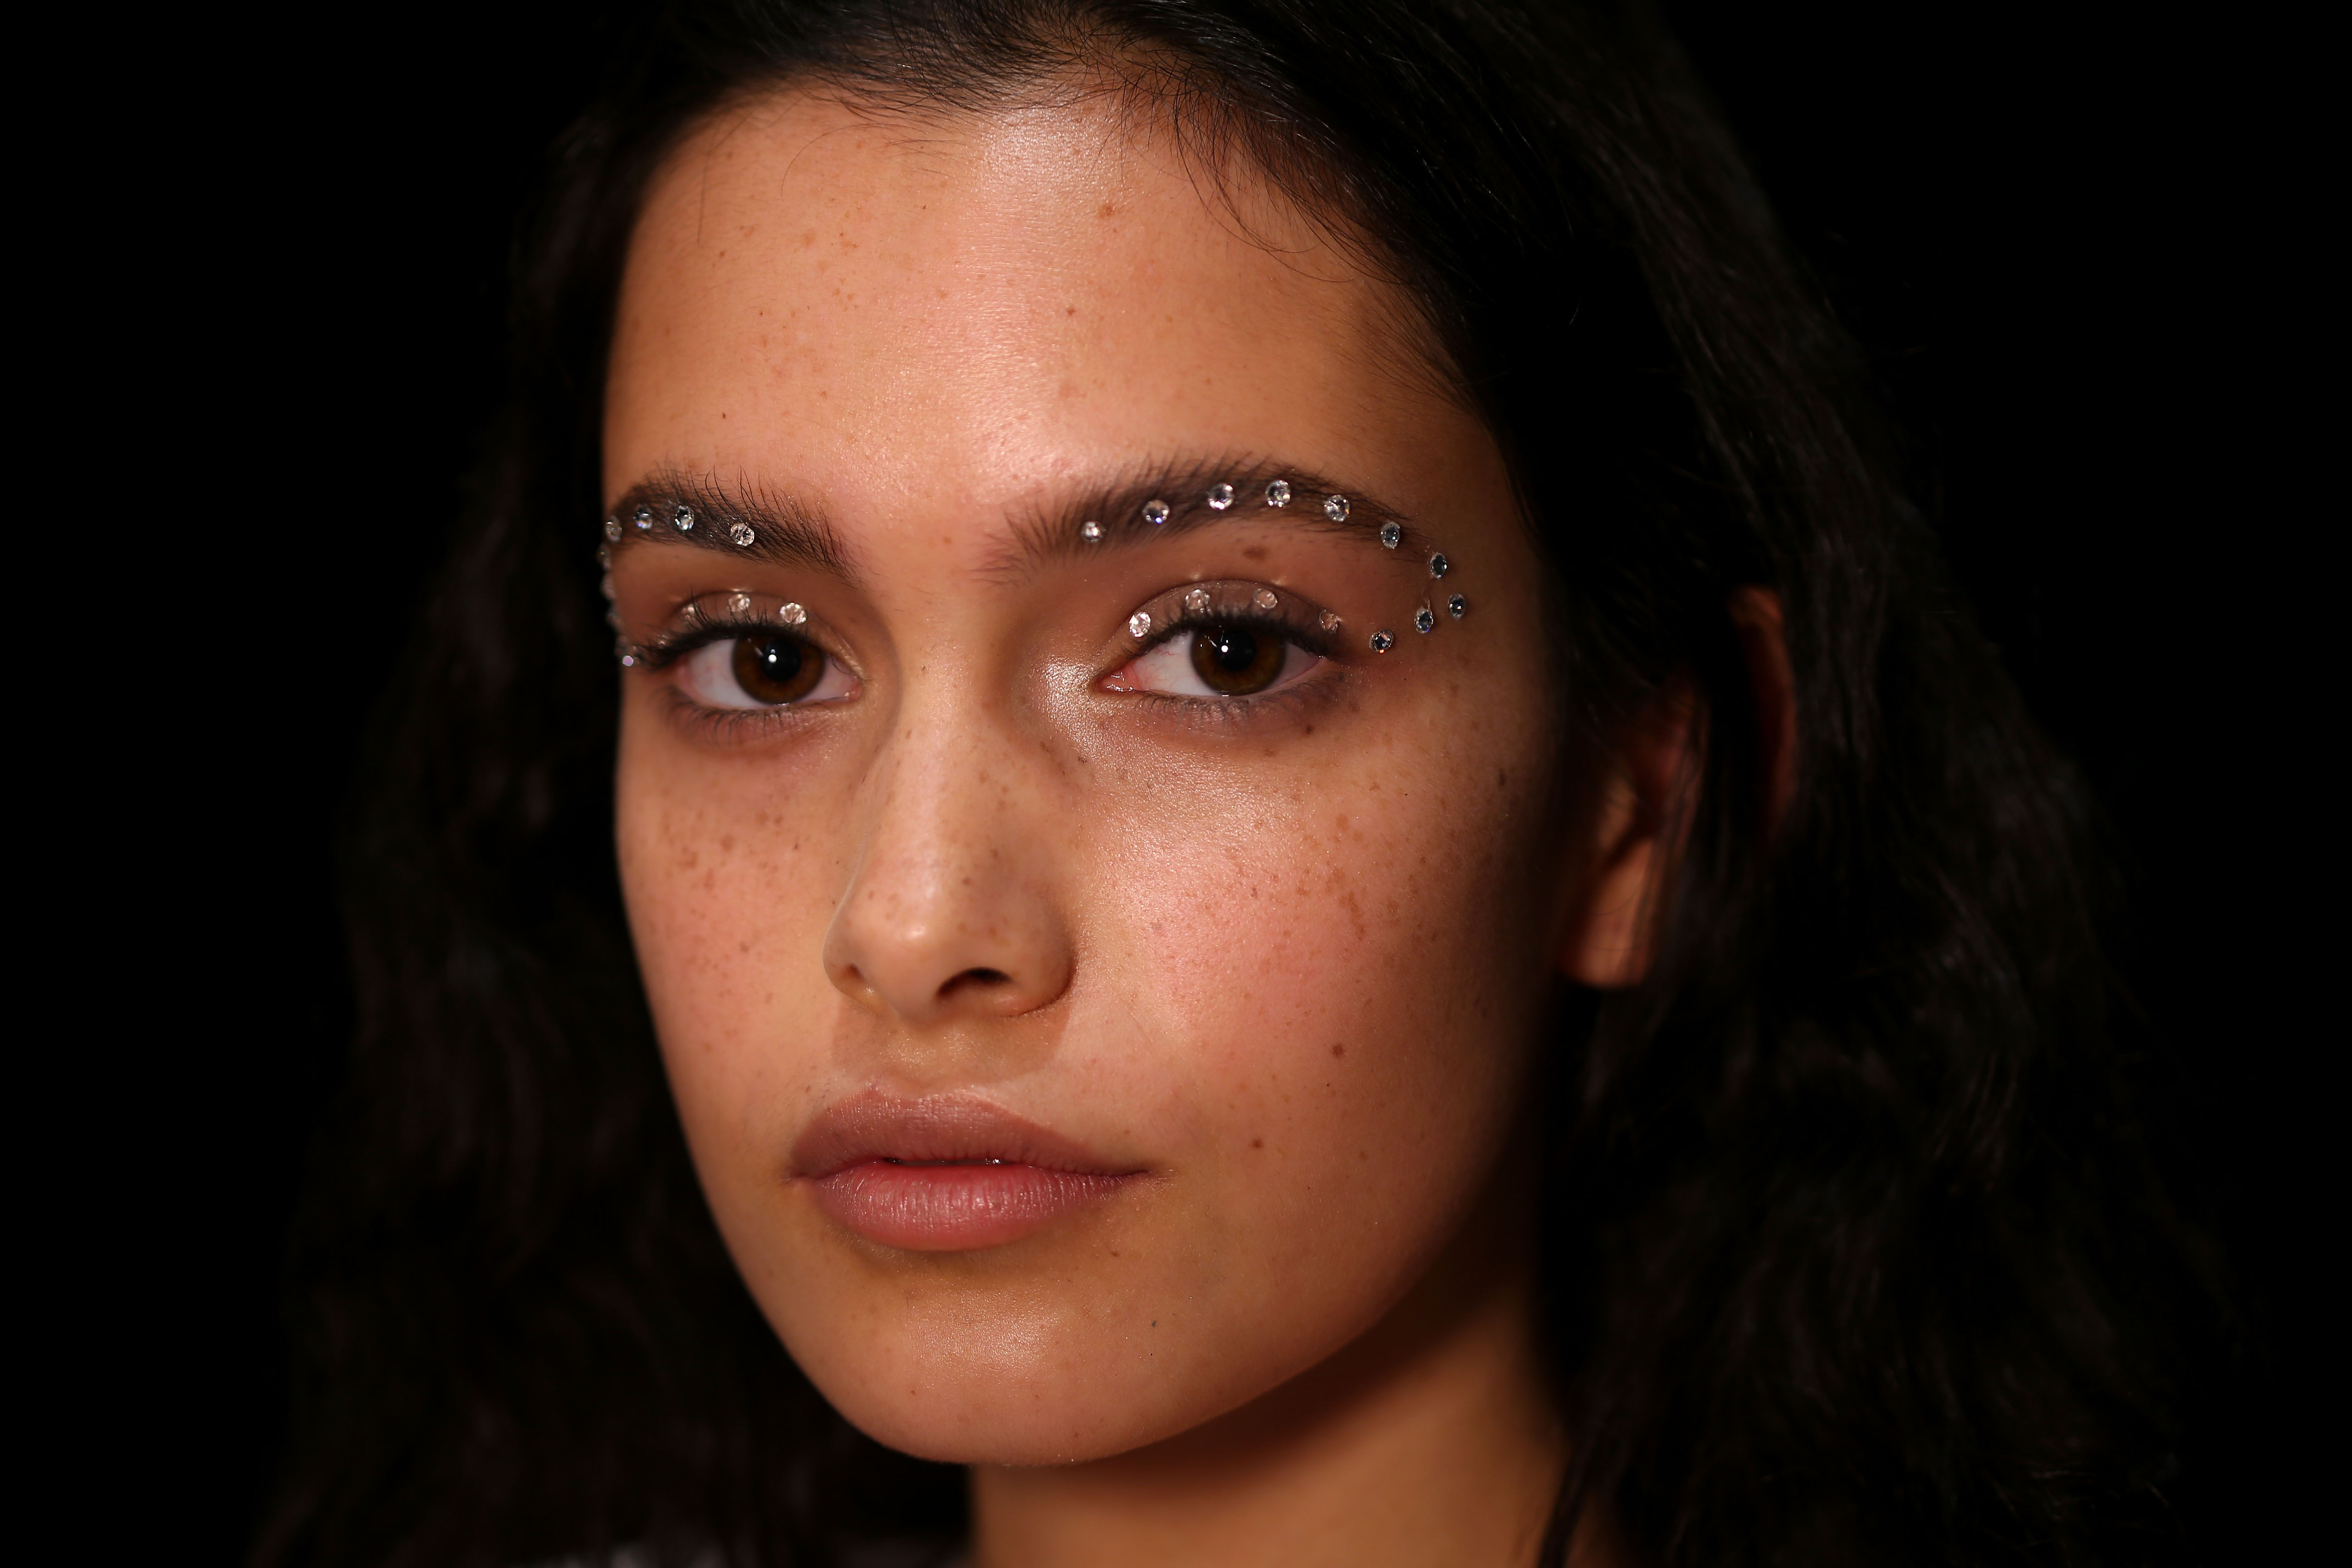 The Australian Resort 2017 runways contained all the ingredients for a captivating beauty look, from dramatic and bold to barely there. Glowy, lit-from-within skin was at Albus Lumen and We Are Kindred; artful graphics adorned eyes at Akira and P.E Nation; and can't-wait-to-try-that-at-home hairstyles ruled at Daniel Avakian and C/MEO Collective. Lips stole the show at KitX and We are Handsome, while glittering embellishments brought a hint of drama at Tome, Discount Universe and Emma Mulholland. <br /> Click through for the prettiest backstage looks.